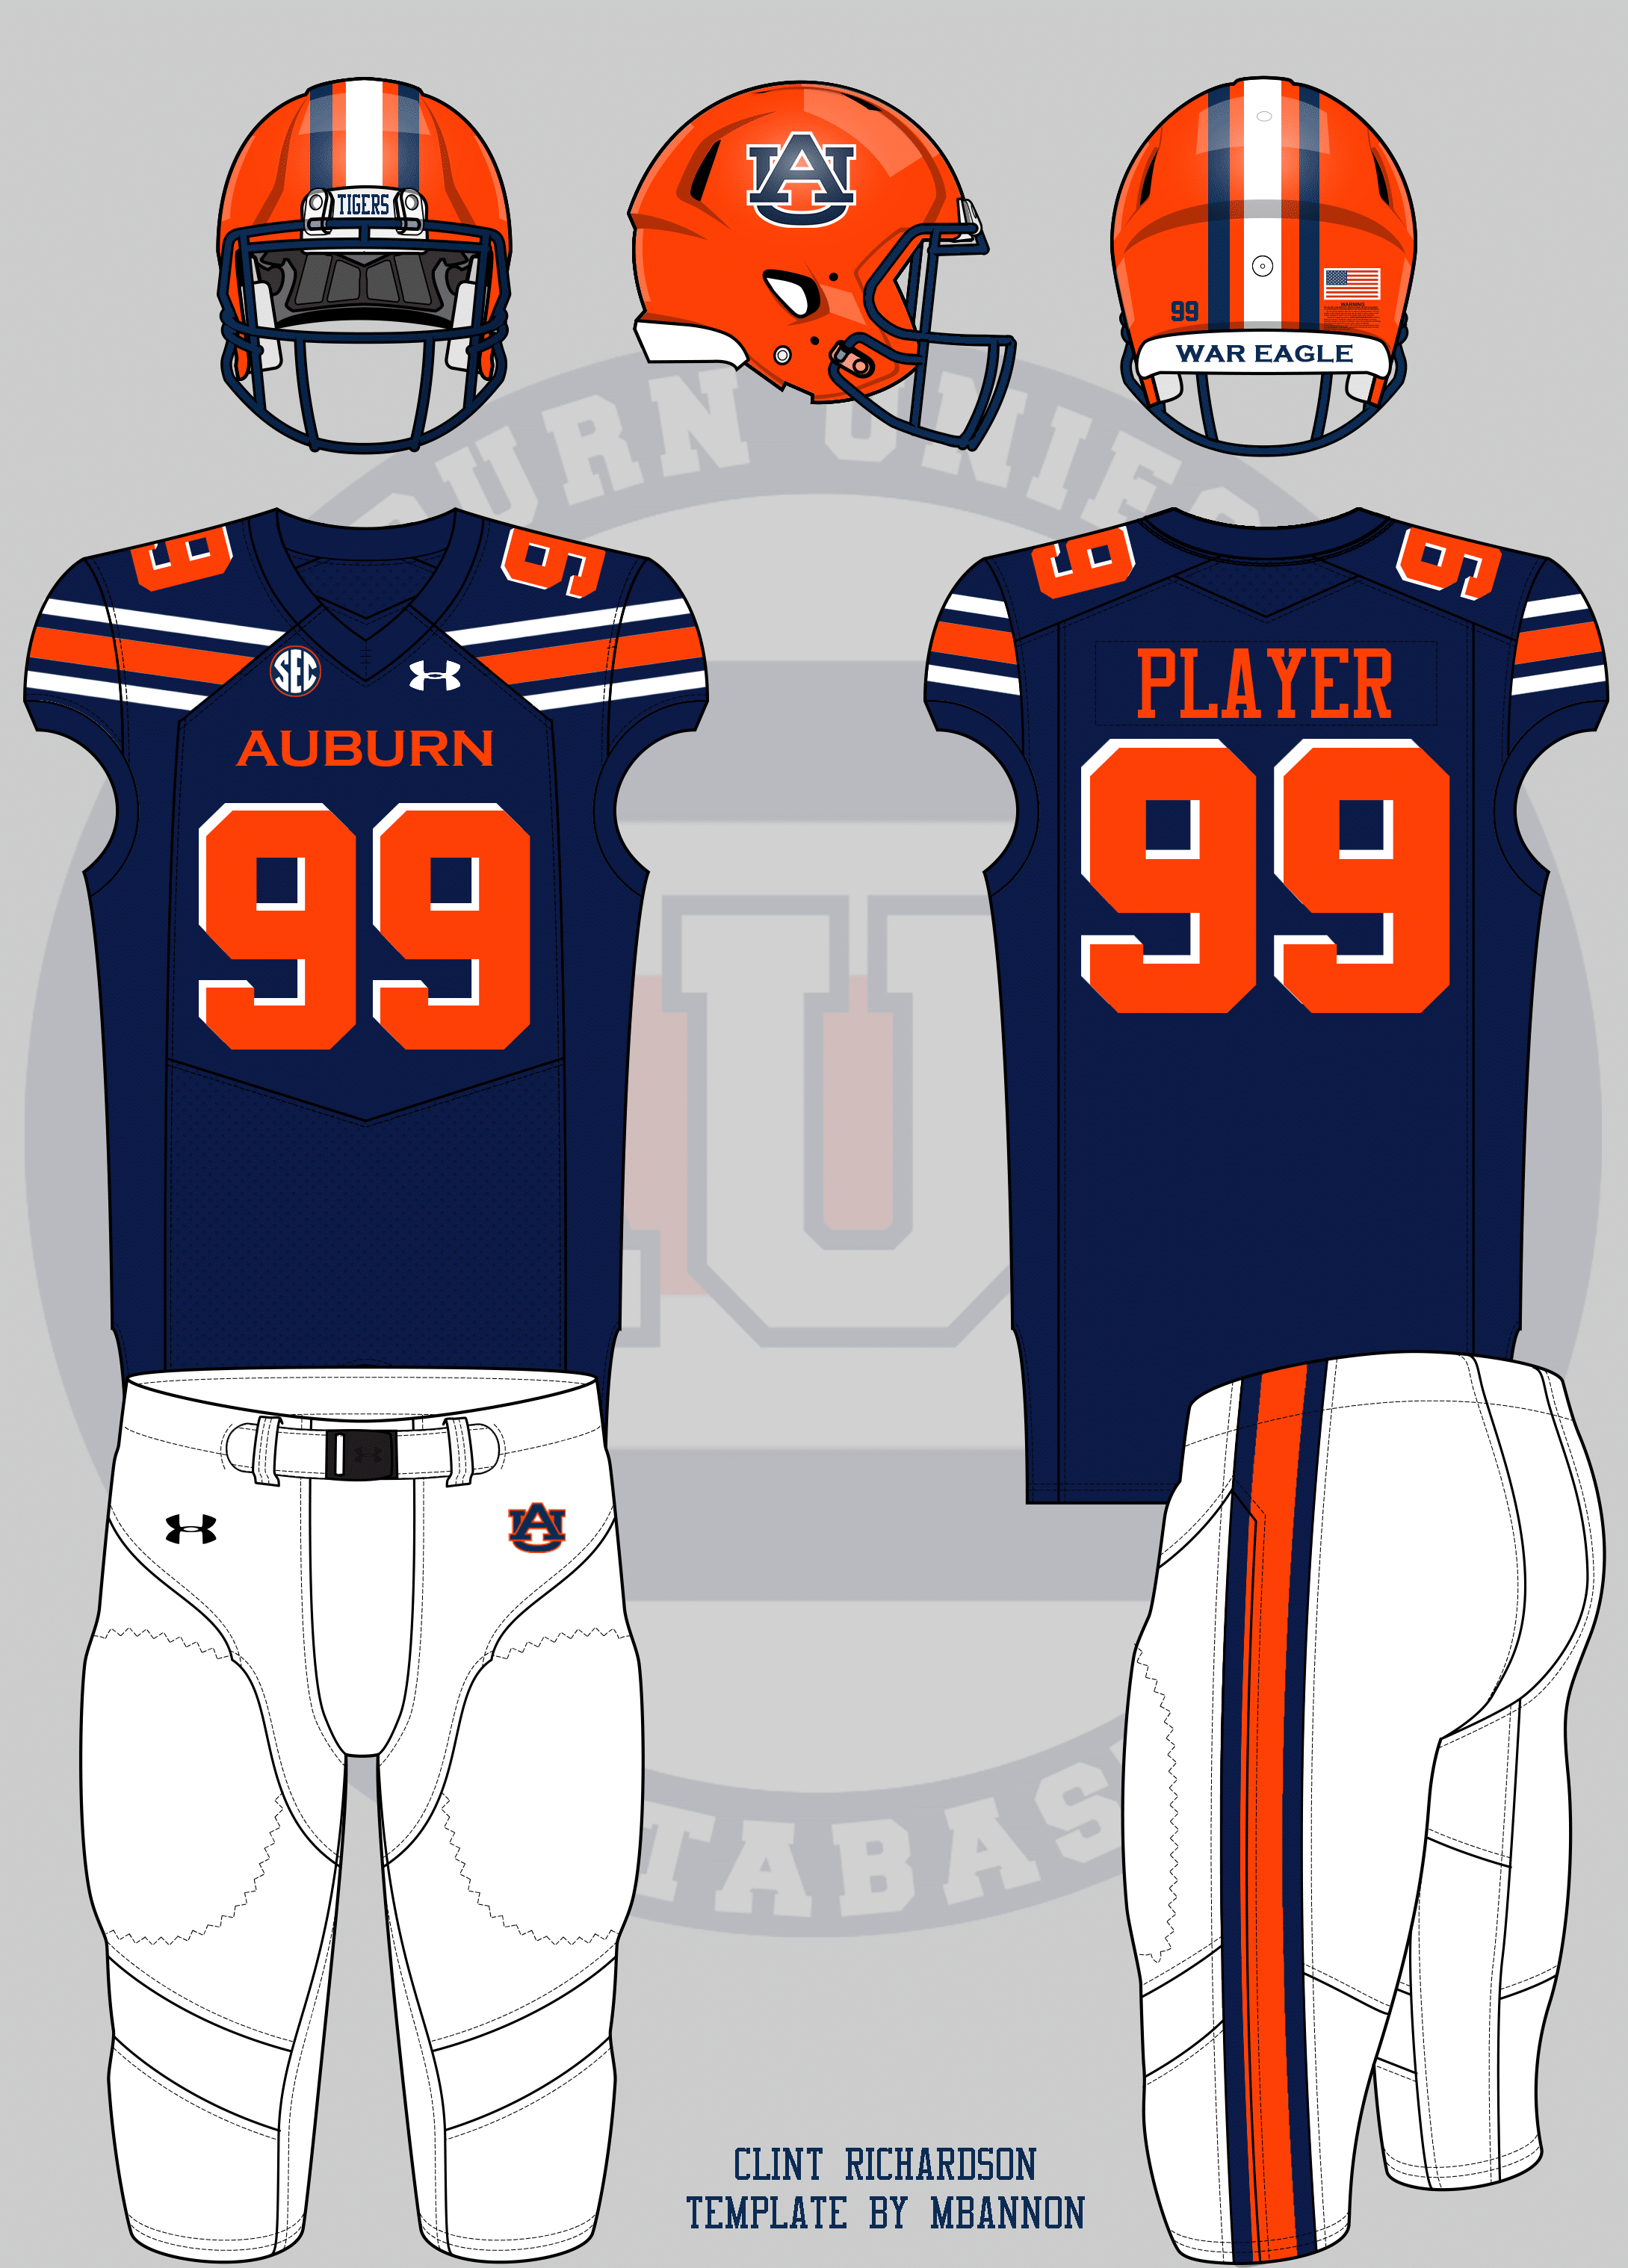 a1b1f49a5ae3c I left the pants as normal this time around. Auburn gets an orange helmet  and orange numbers with a white reverse dropshadow.